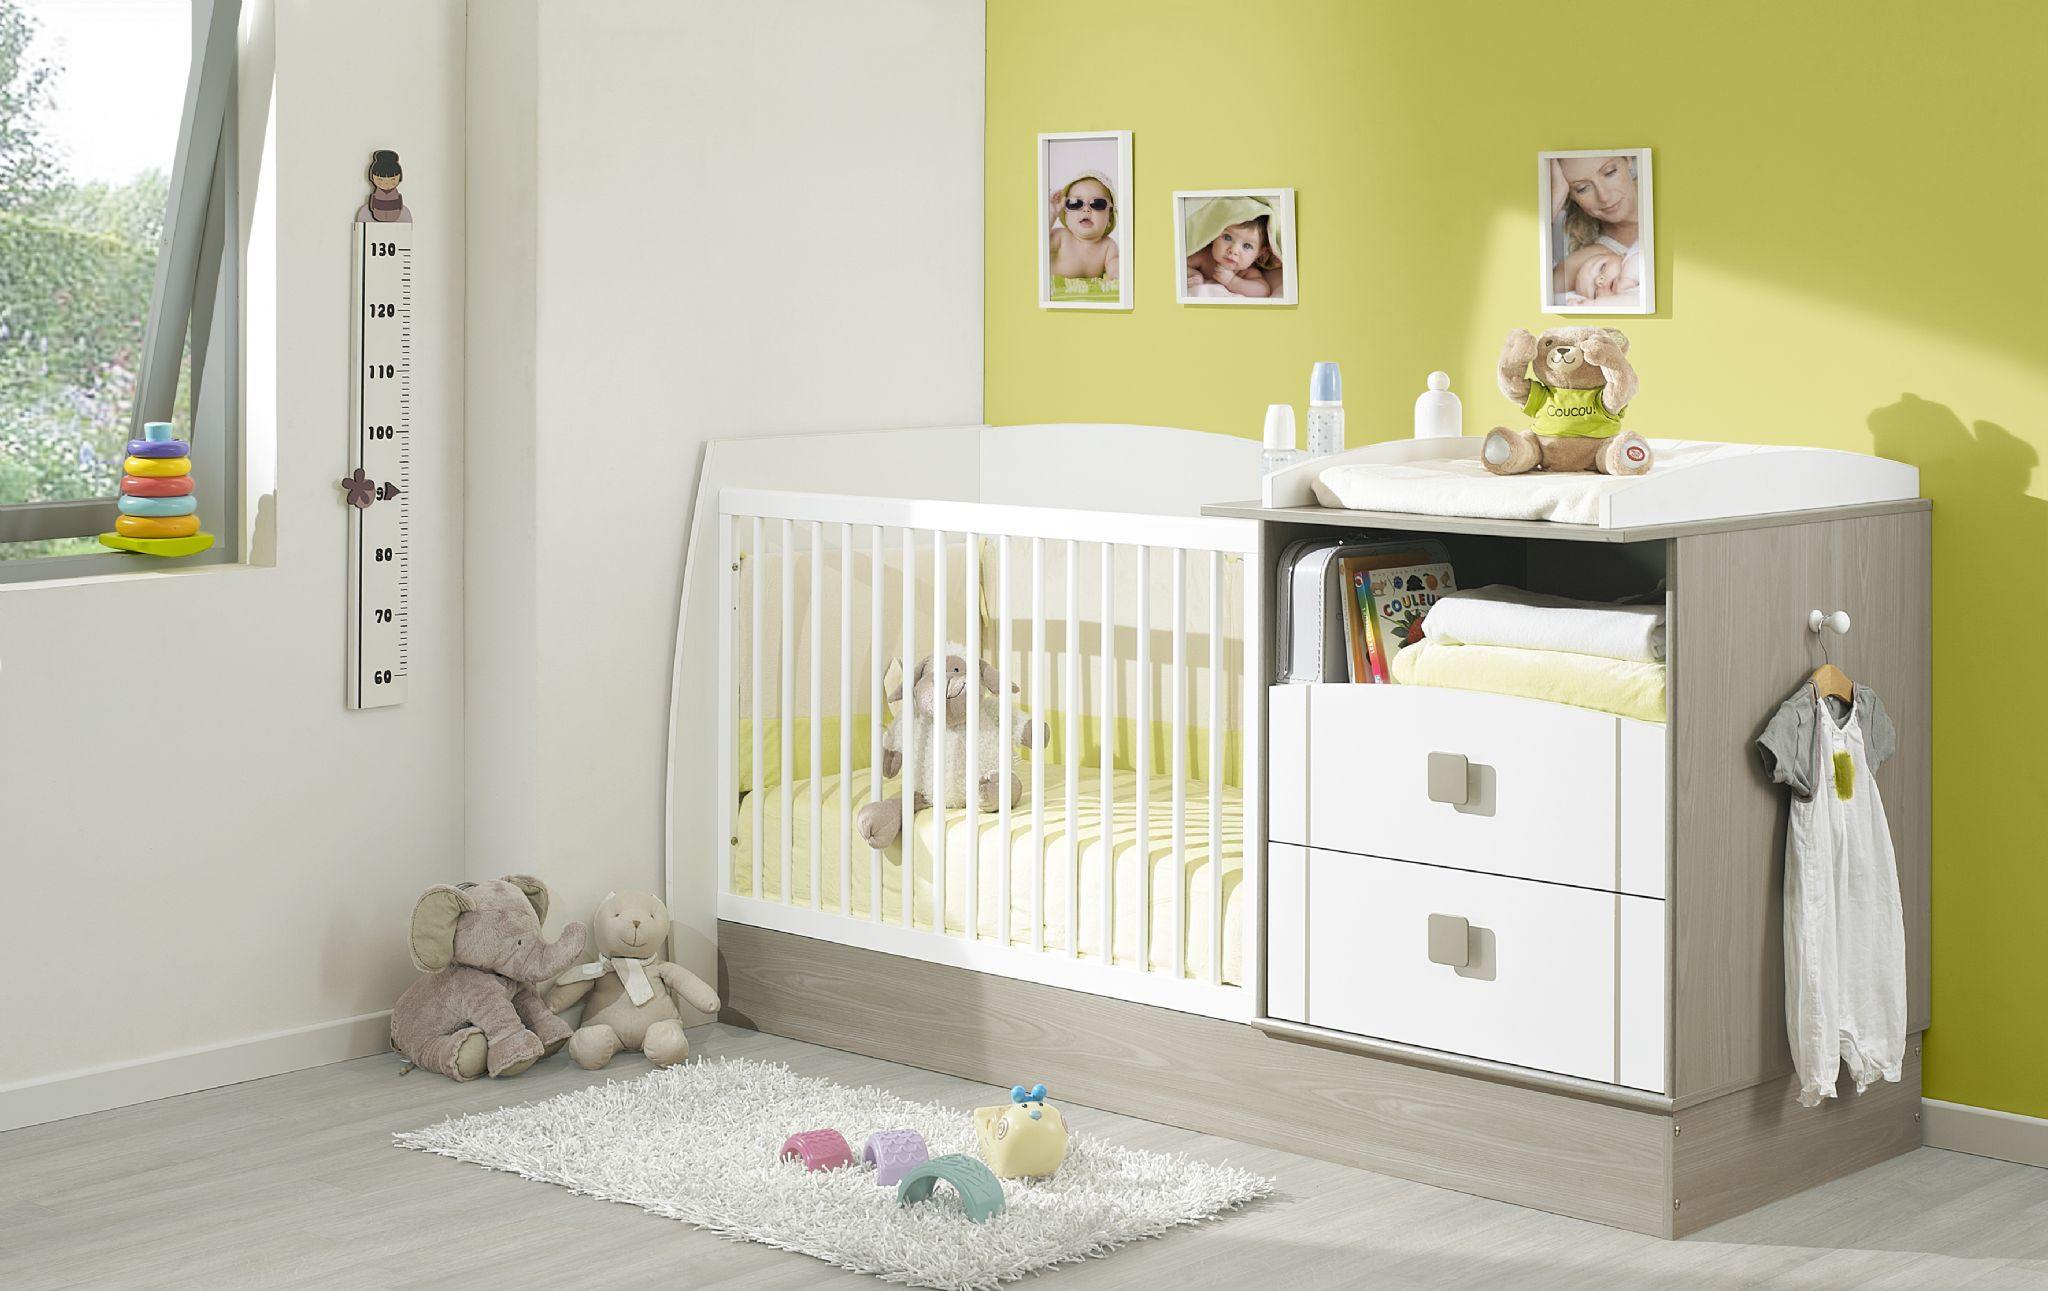 compact nursery furniture. Compact Nursery Furniture Great Value Living And Dining Plus Bathroom Garden